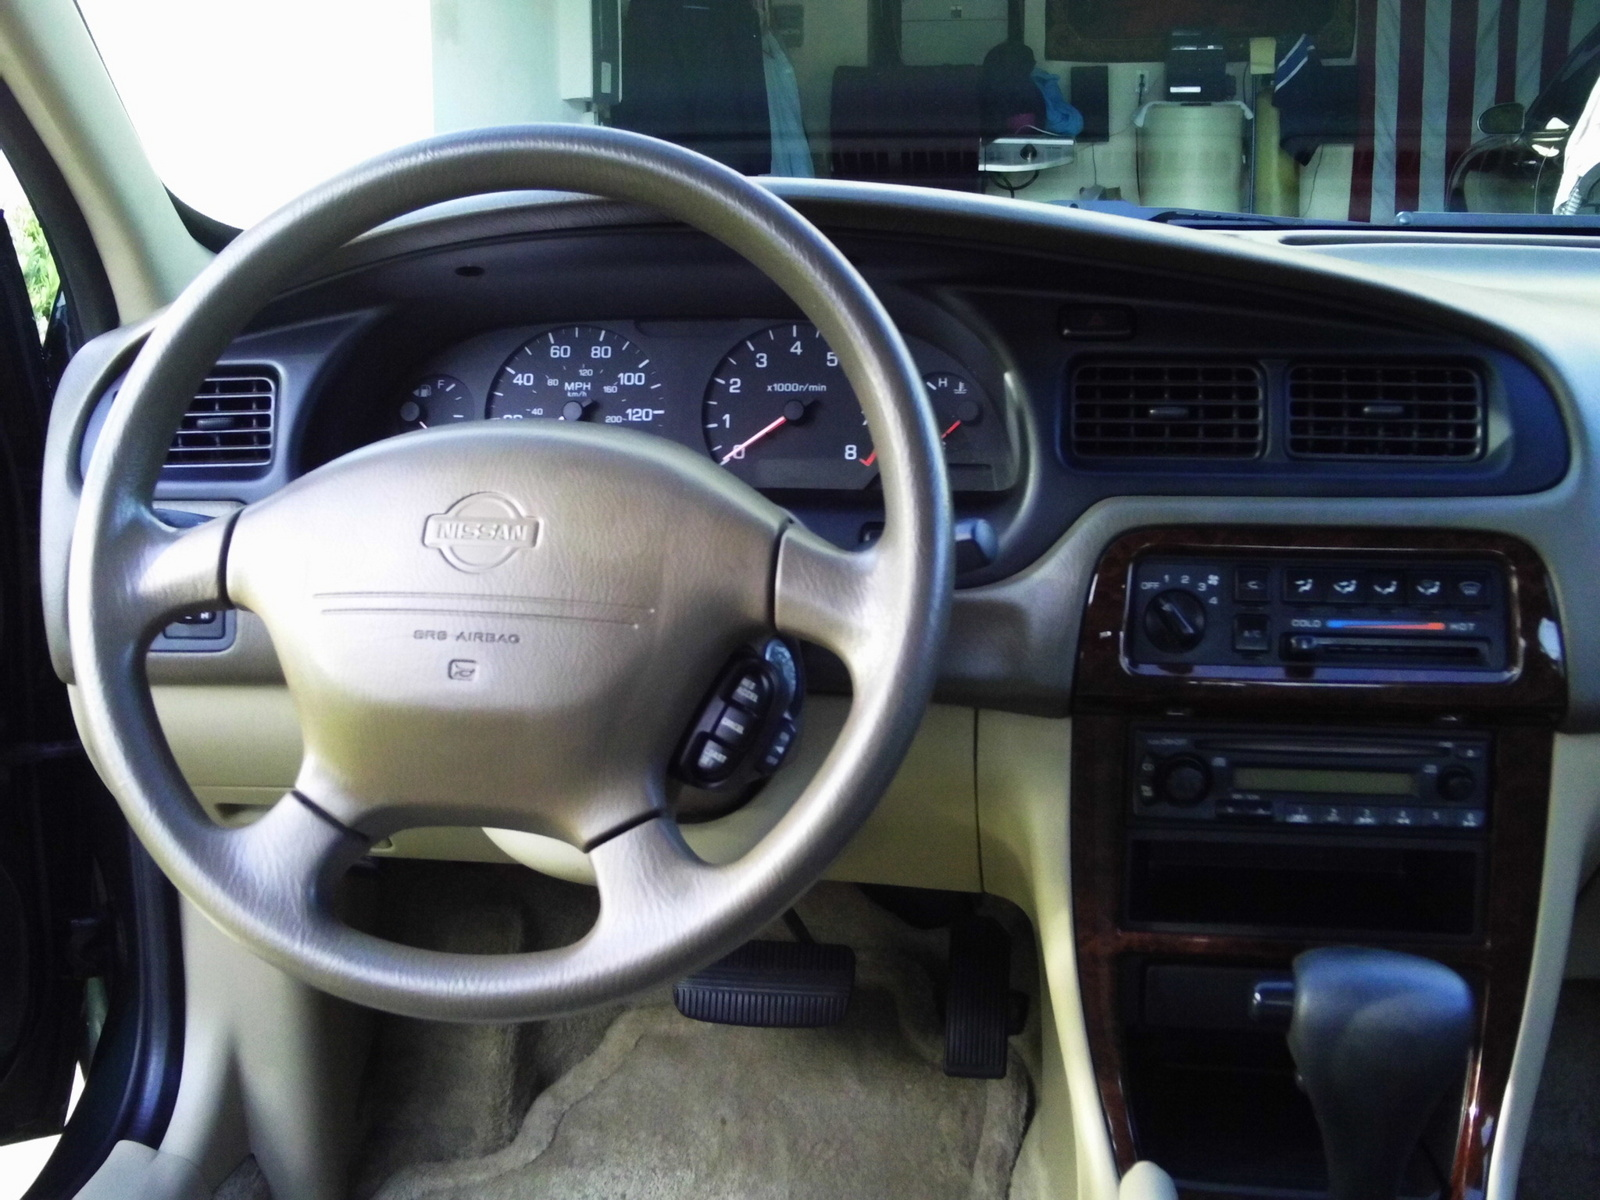 2001 nissan altima interior image collections hd cars wallpaper 2001 nissan altima gxe images hd cars wallpaper 2001 nissan altima interior images reverse search filename vanachro Image collections